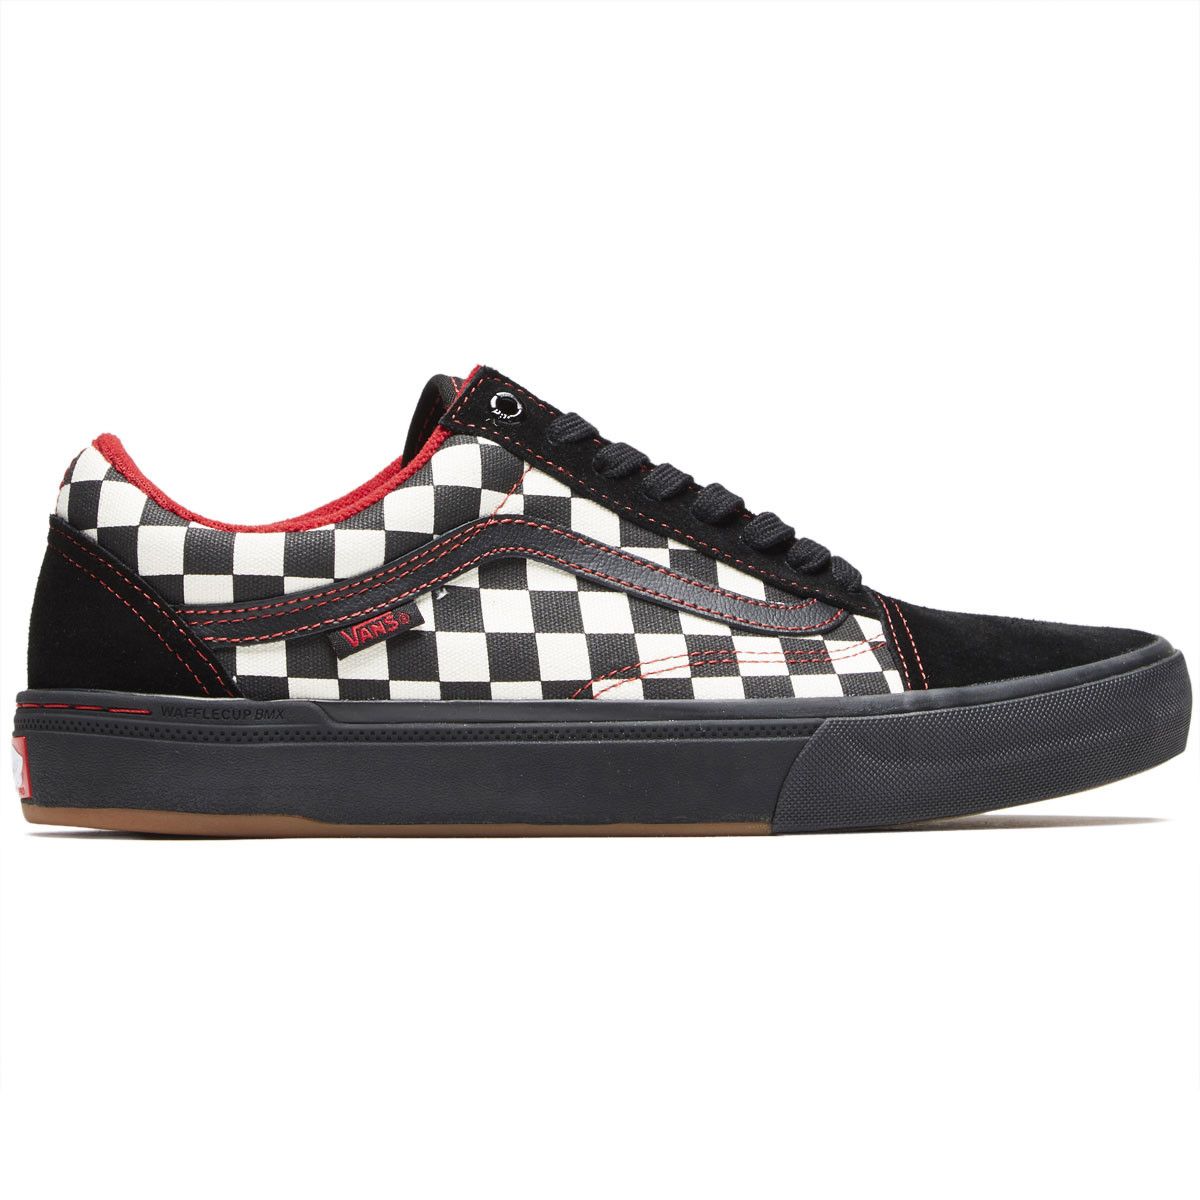 a8f477373926a4 Vans Old Skool Pro BMX Shoes - Kevin Peraza Black Checkerboard - 10.0